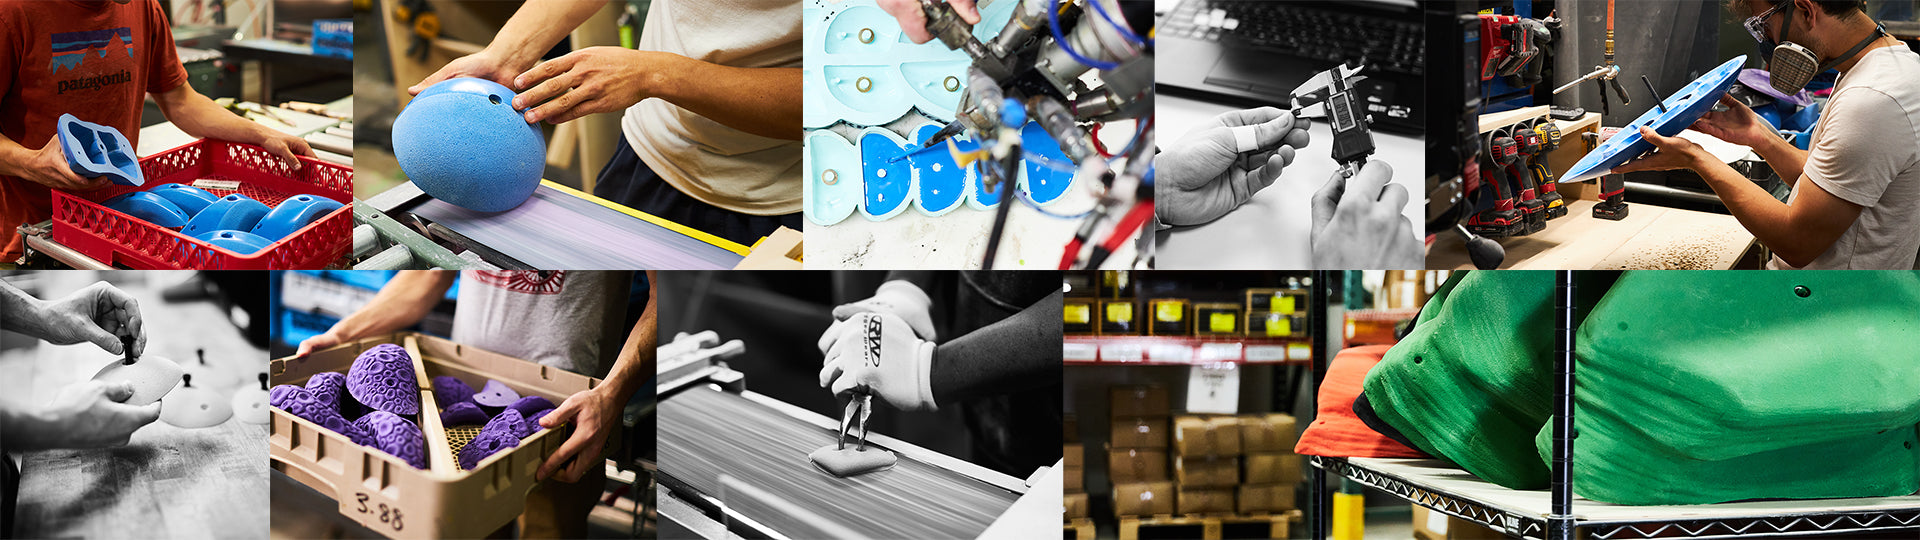 Manufacturing Collage